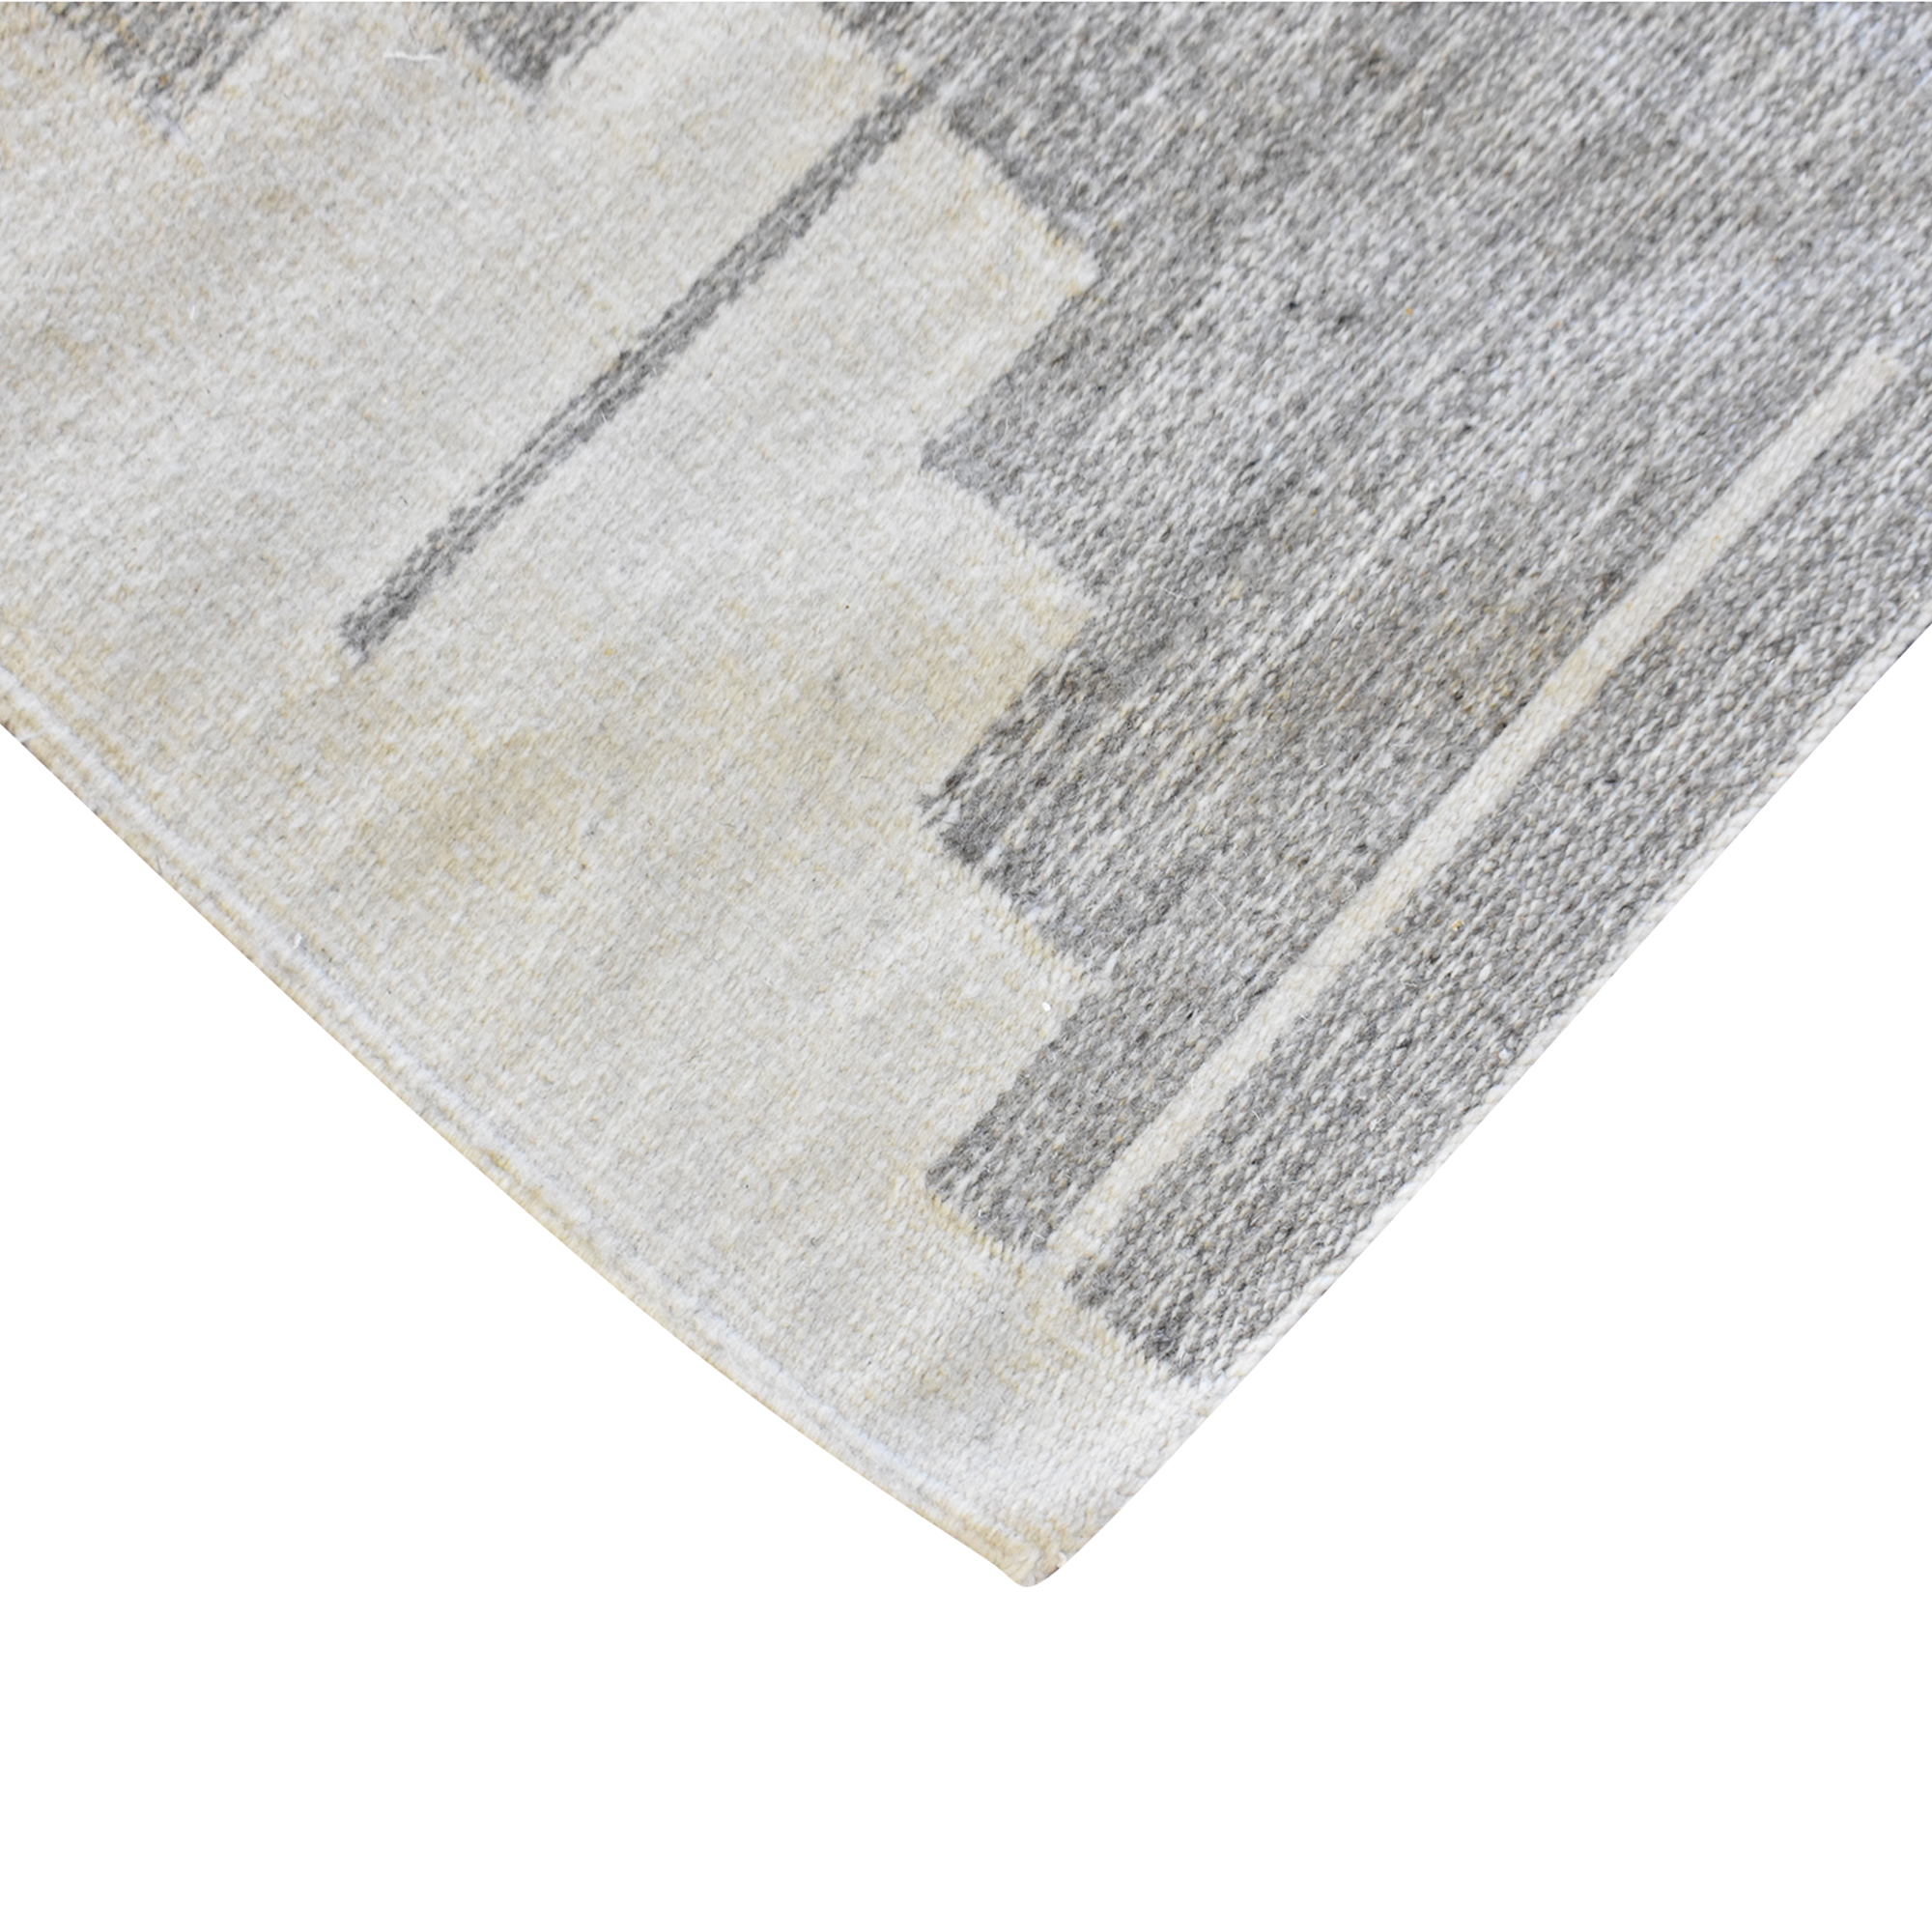 buy The Citizenry La Cima Area Rug The Citizenry Rugs